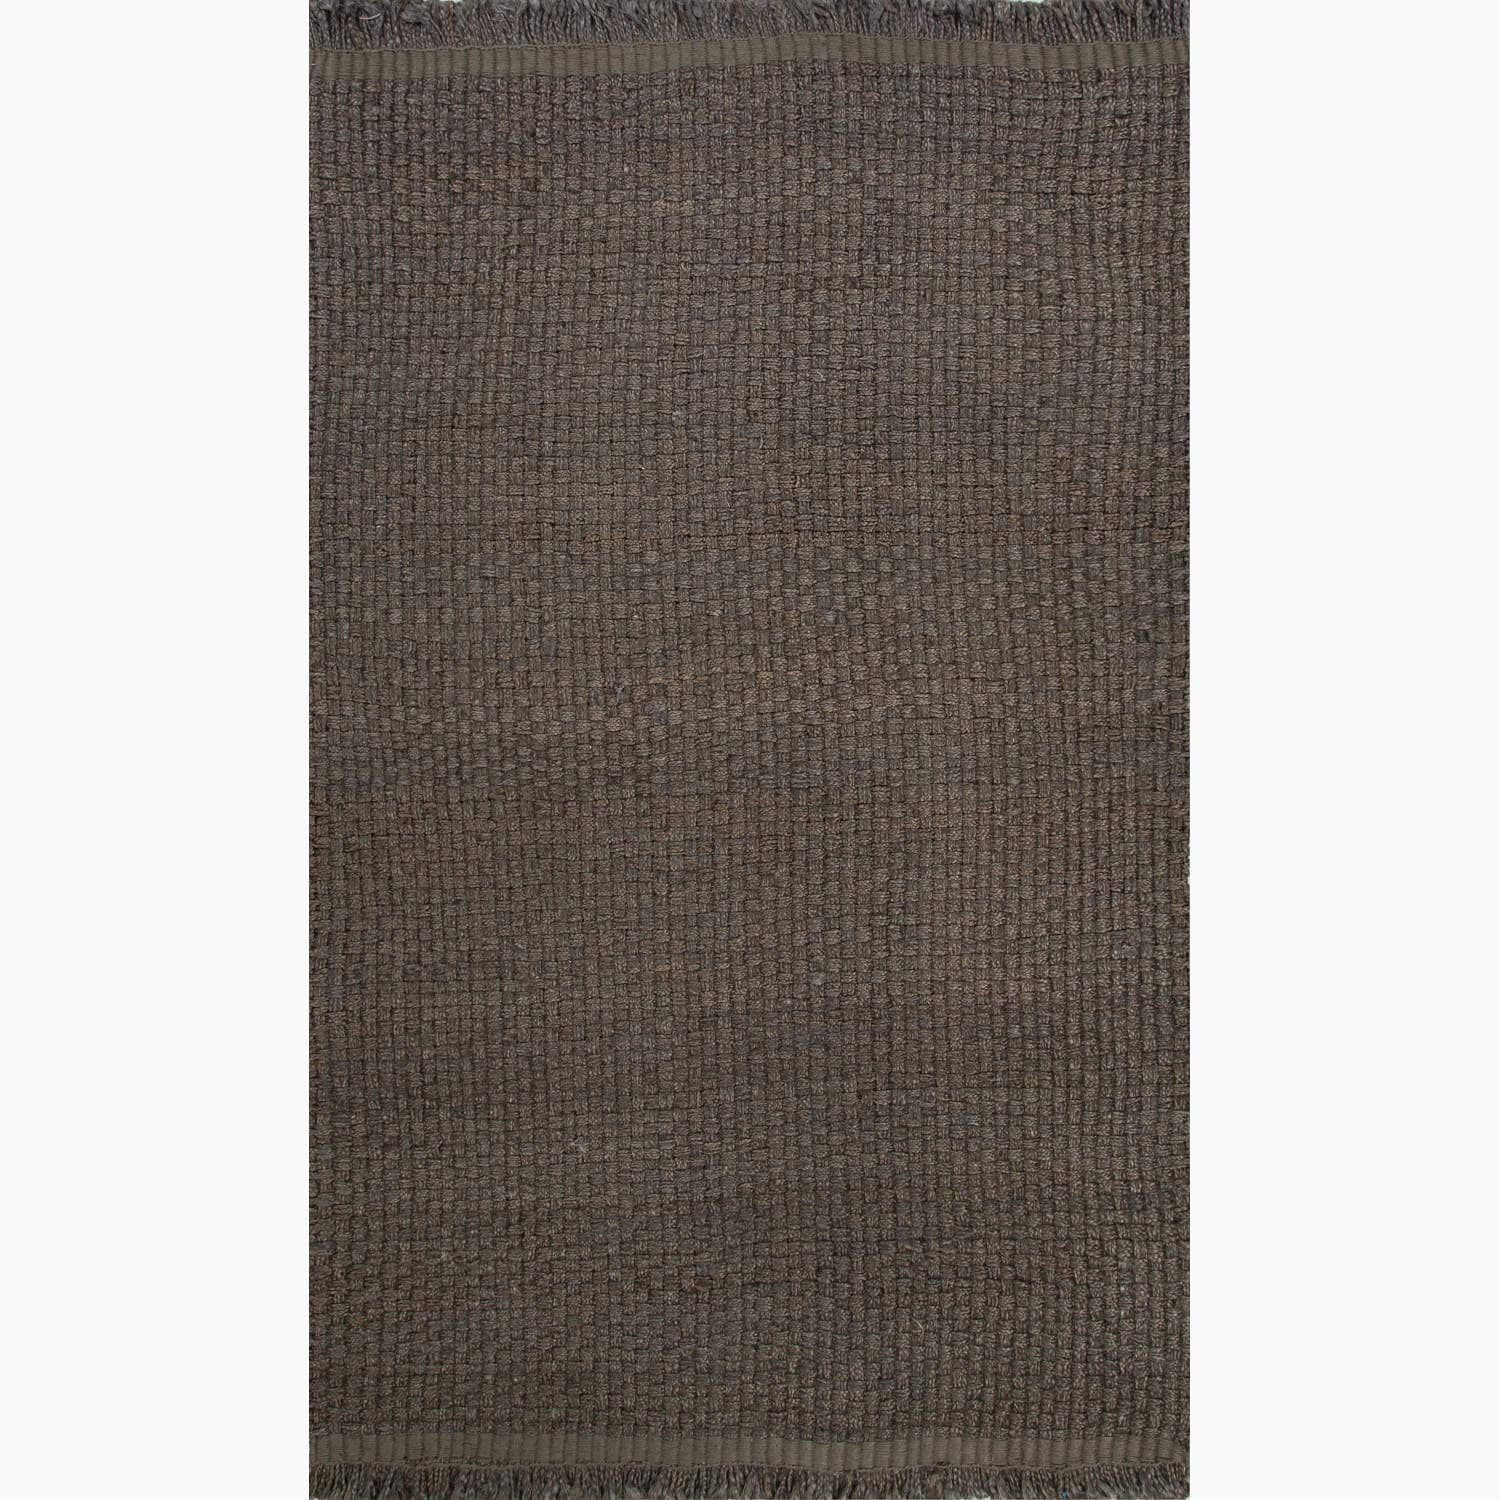 Handmade Gray Hemp Eco-friendly Rug (8 x 10)